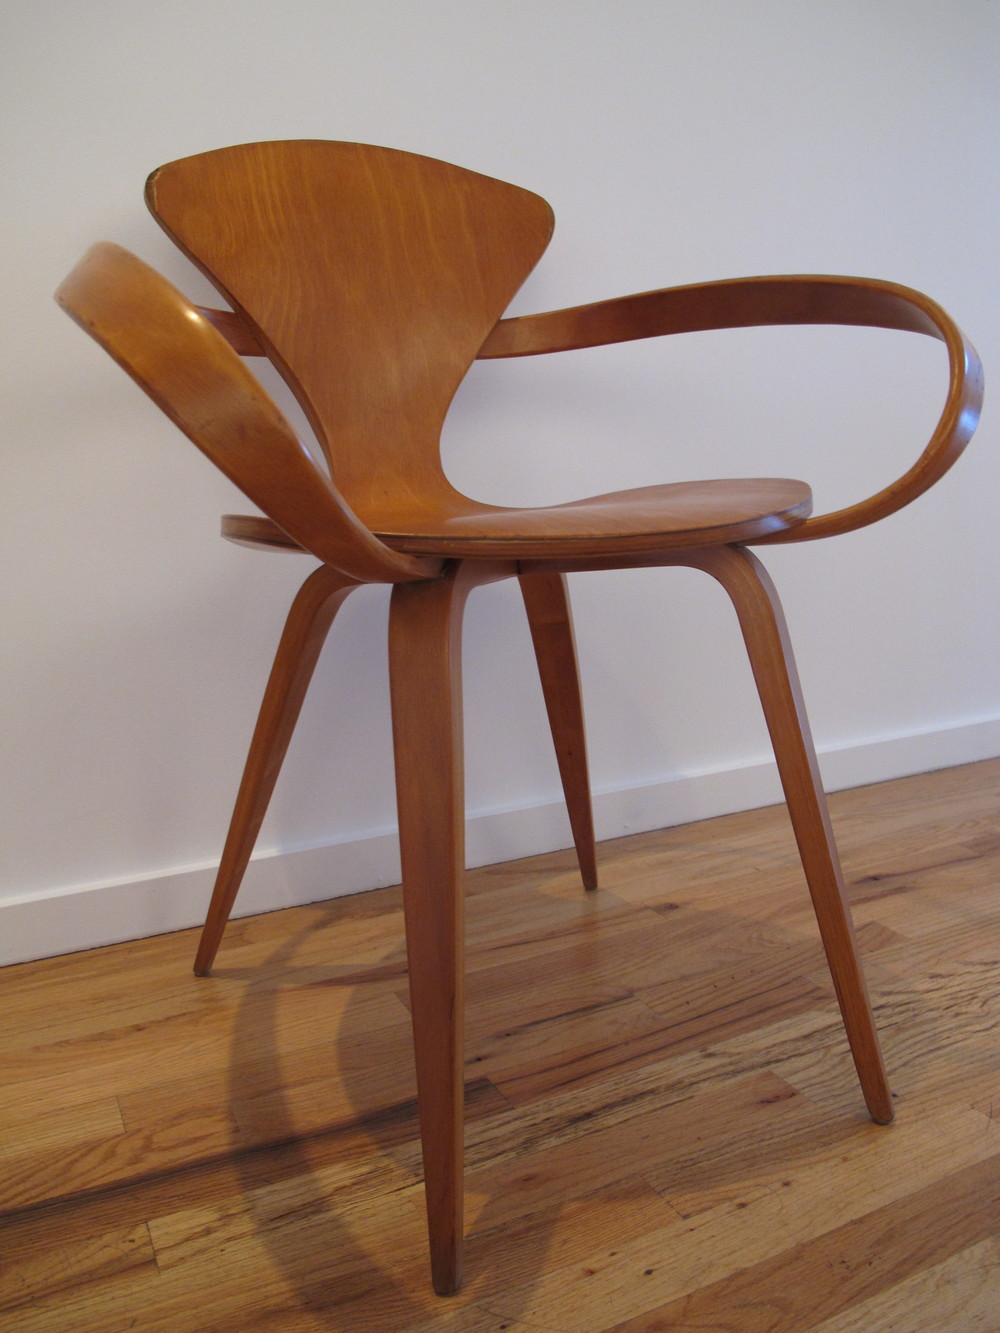 PLYCRAFT PRETZEL CHAIR BY NORMAN CHERNER